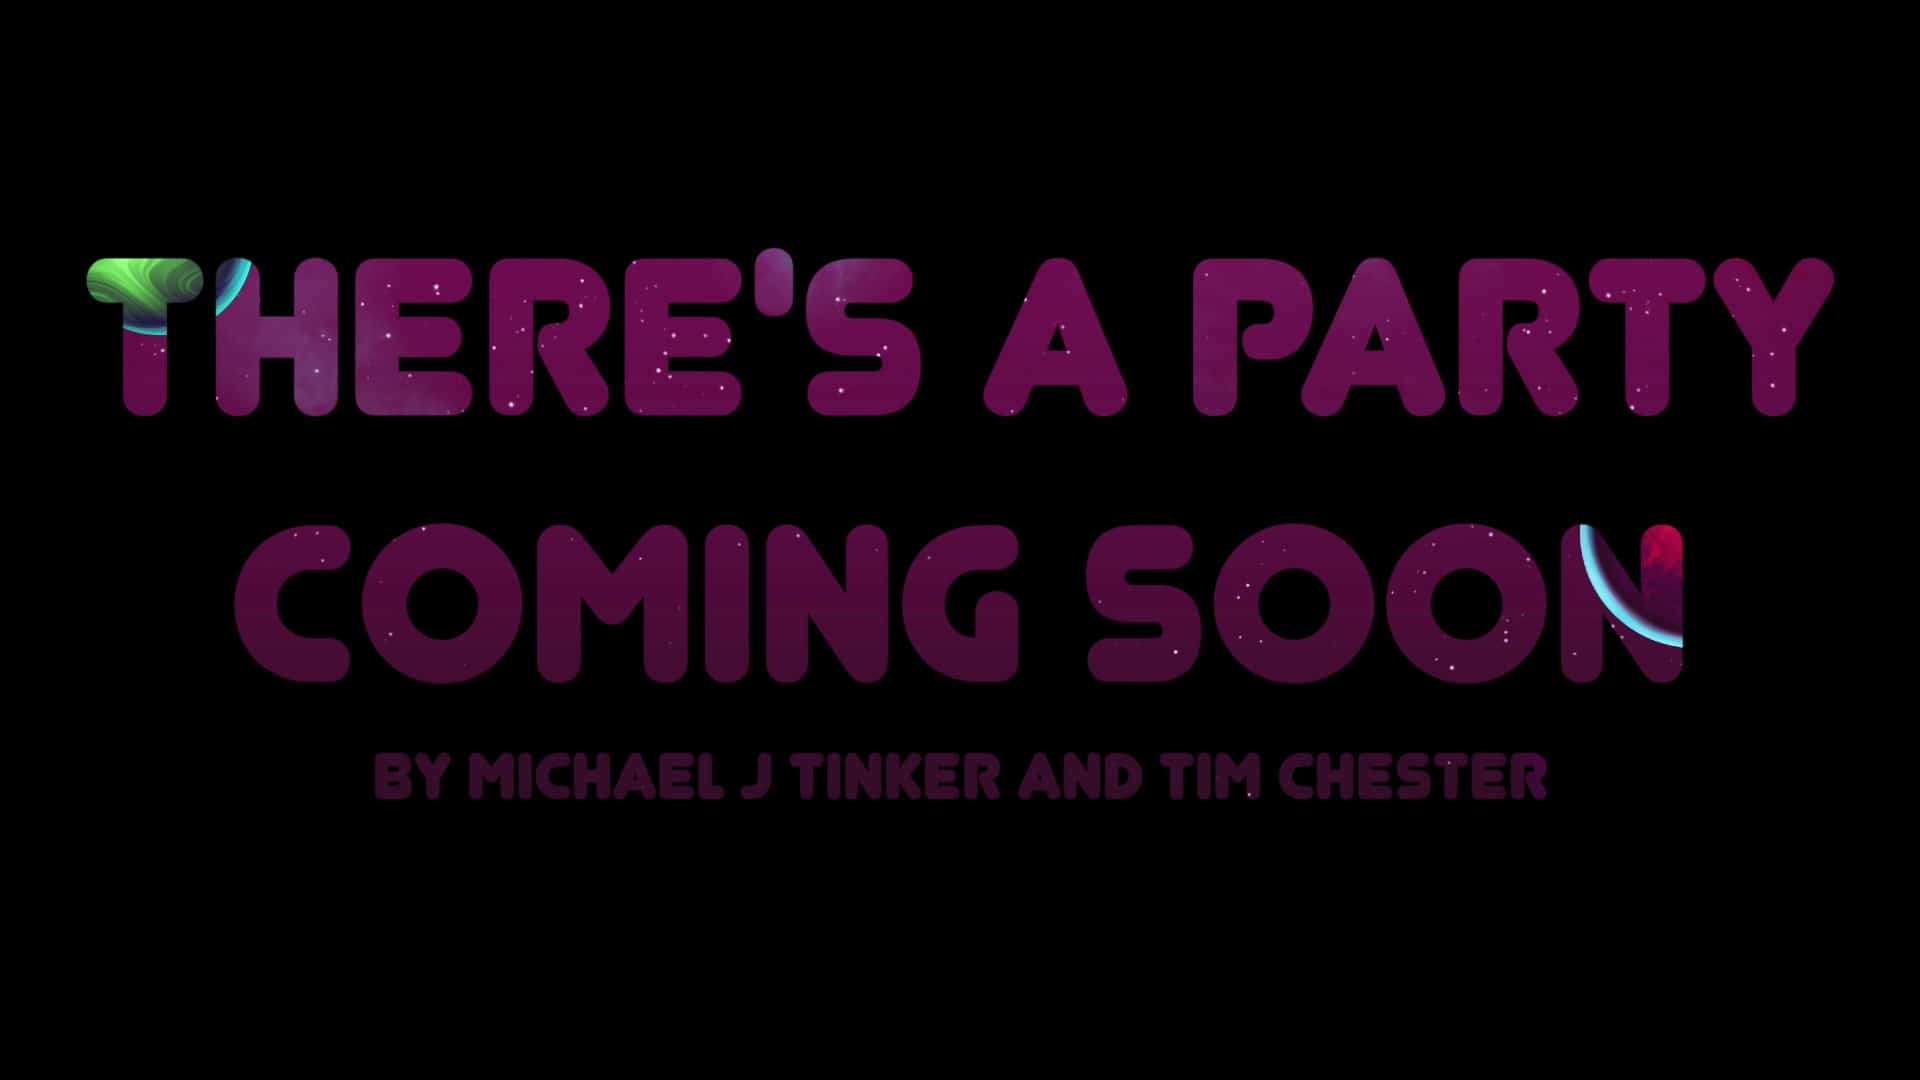 There's a Party Coming Soon